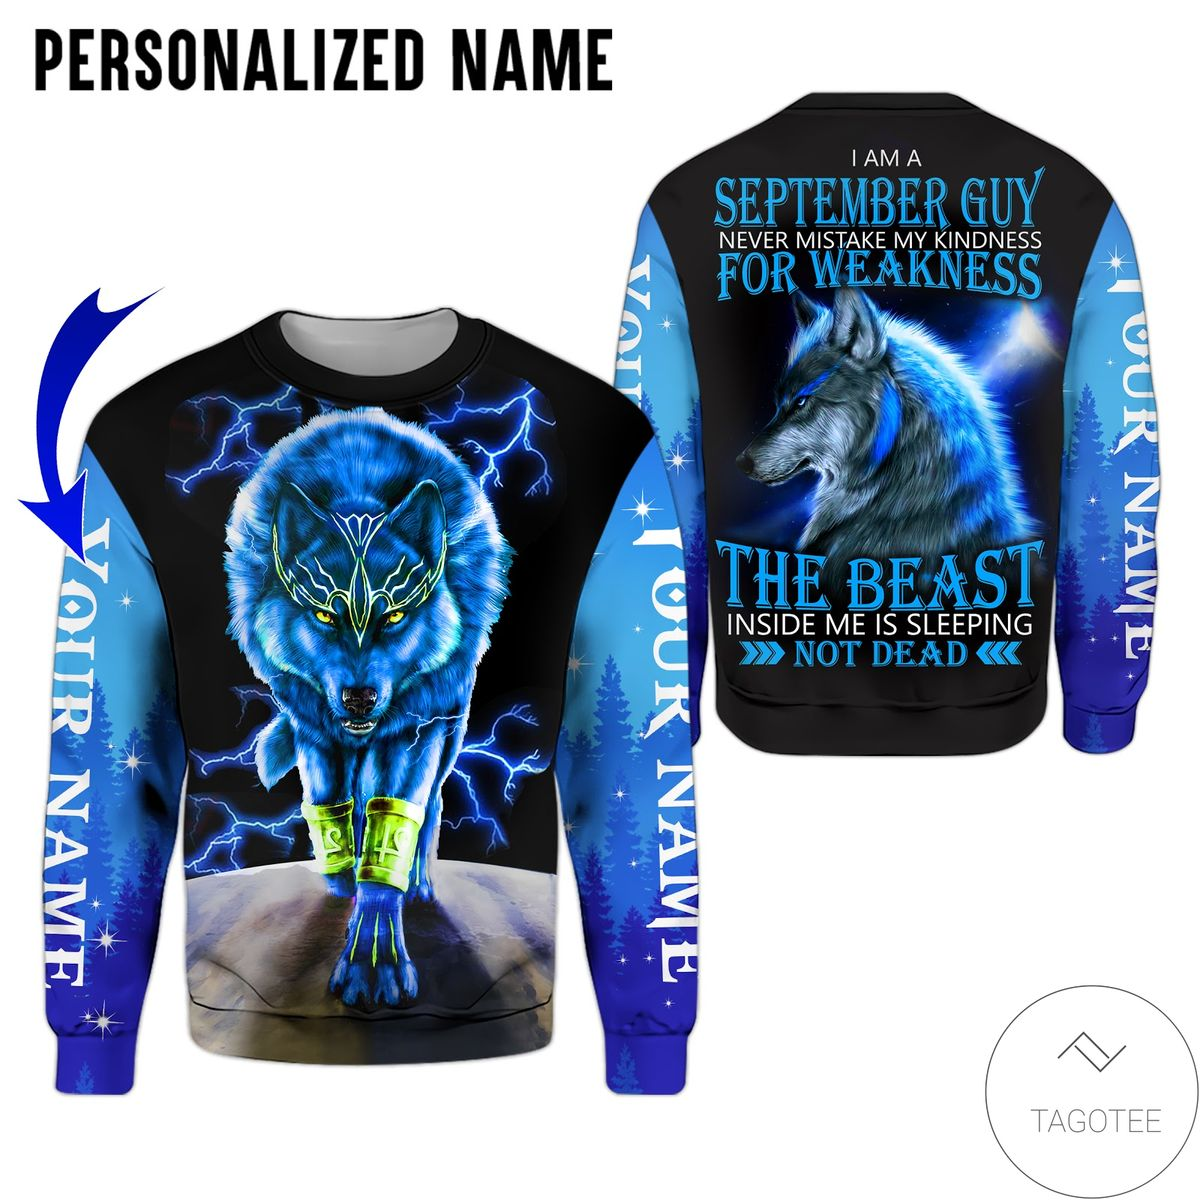 Limited Edition Personalized Name September Guy Wolf The Beast Not Dead All Over Print Hoodie